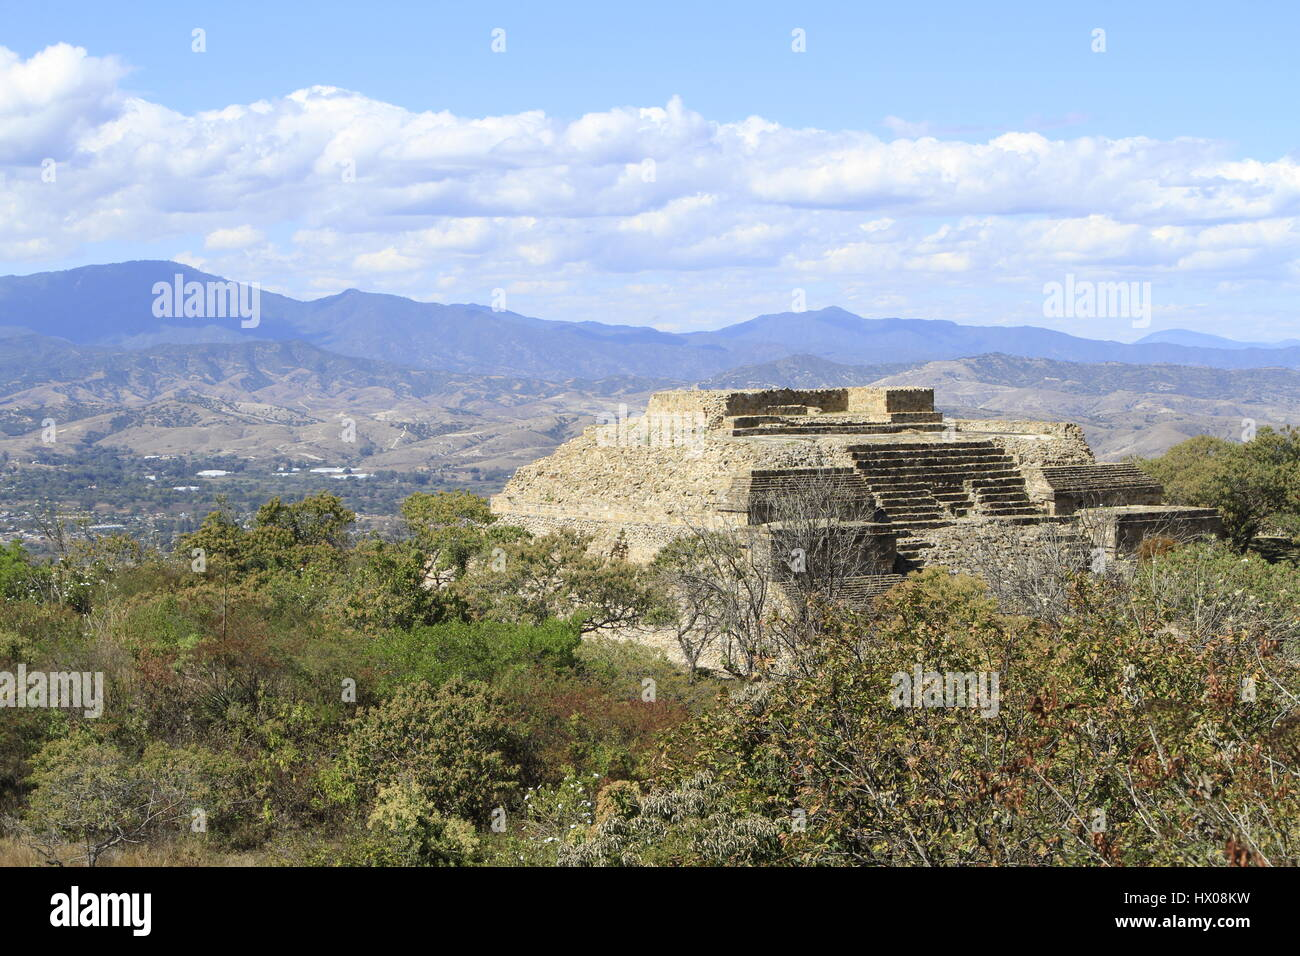 Monte Alban, Pre-Colombian Archeological Site, Oaxaca, Mexico - Stock Image